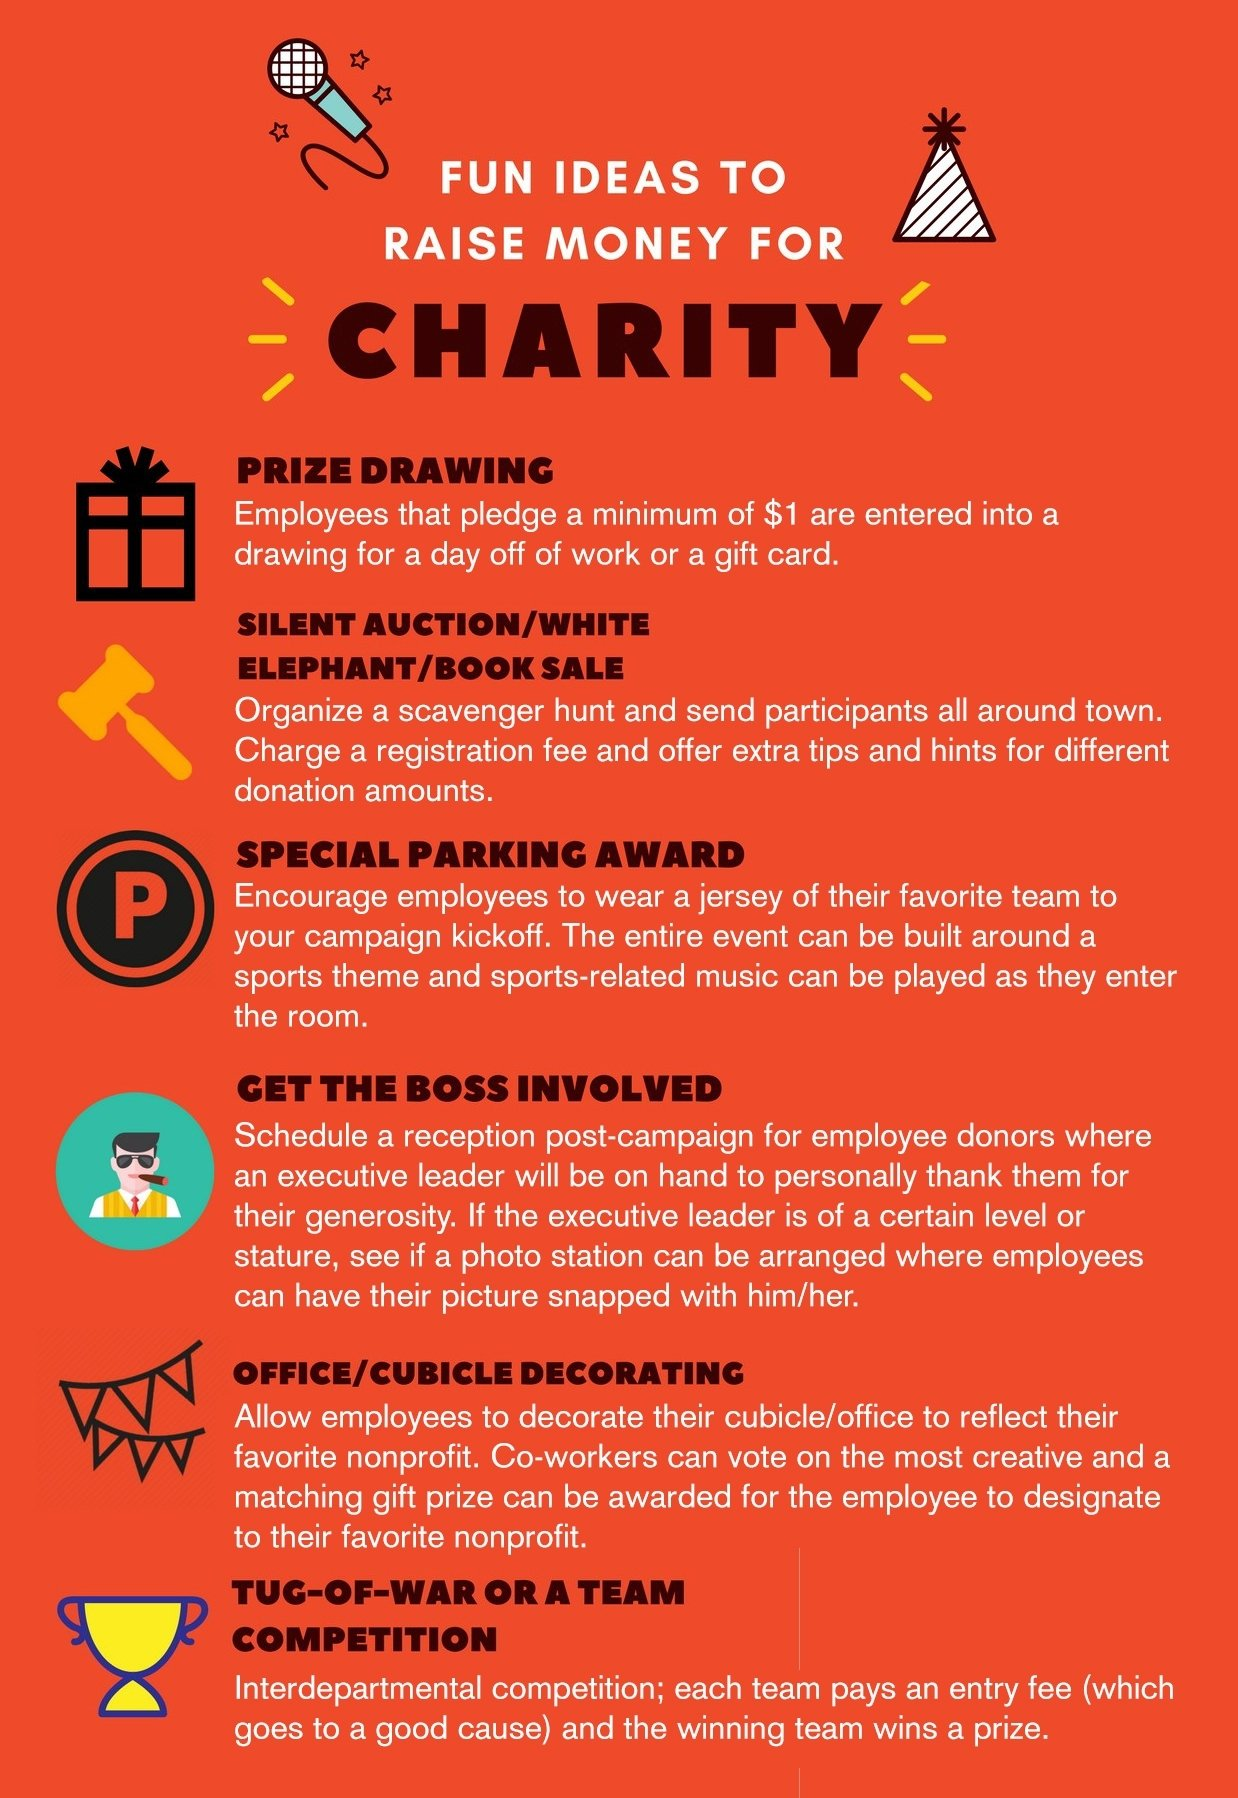 10 Trendy Ideas On How To Raise Money fun ideas for engaging employees and raising money for charity 2020